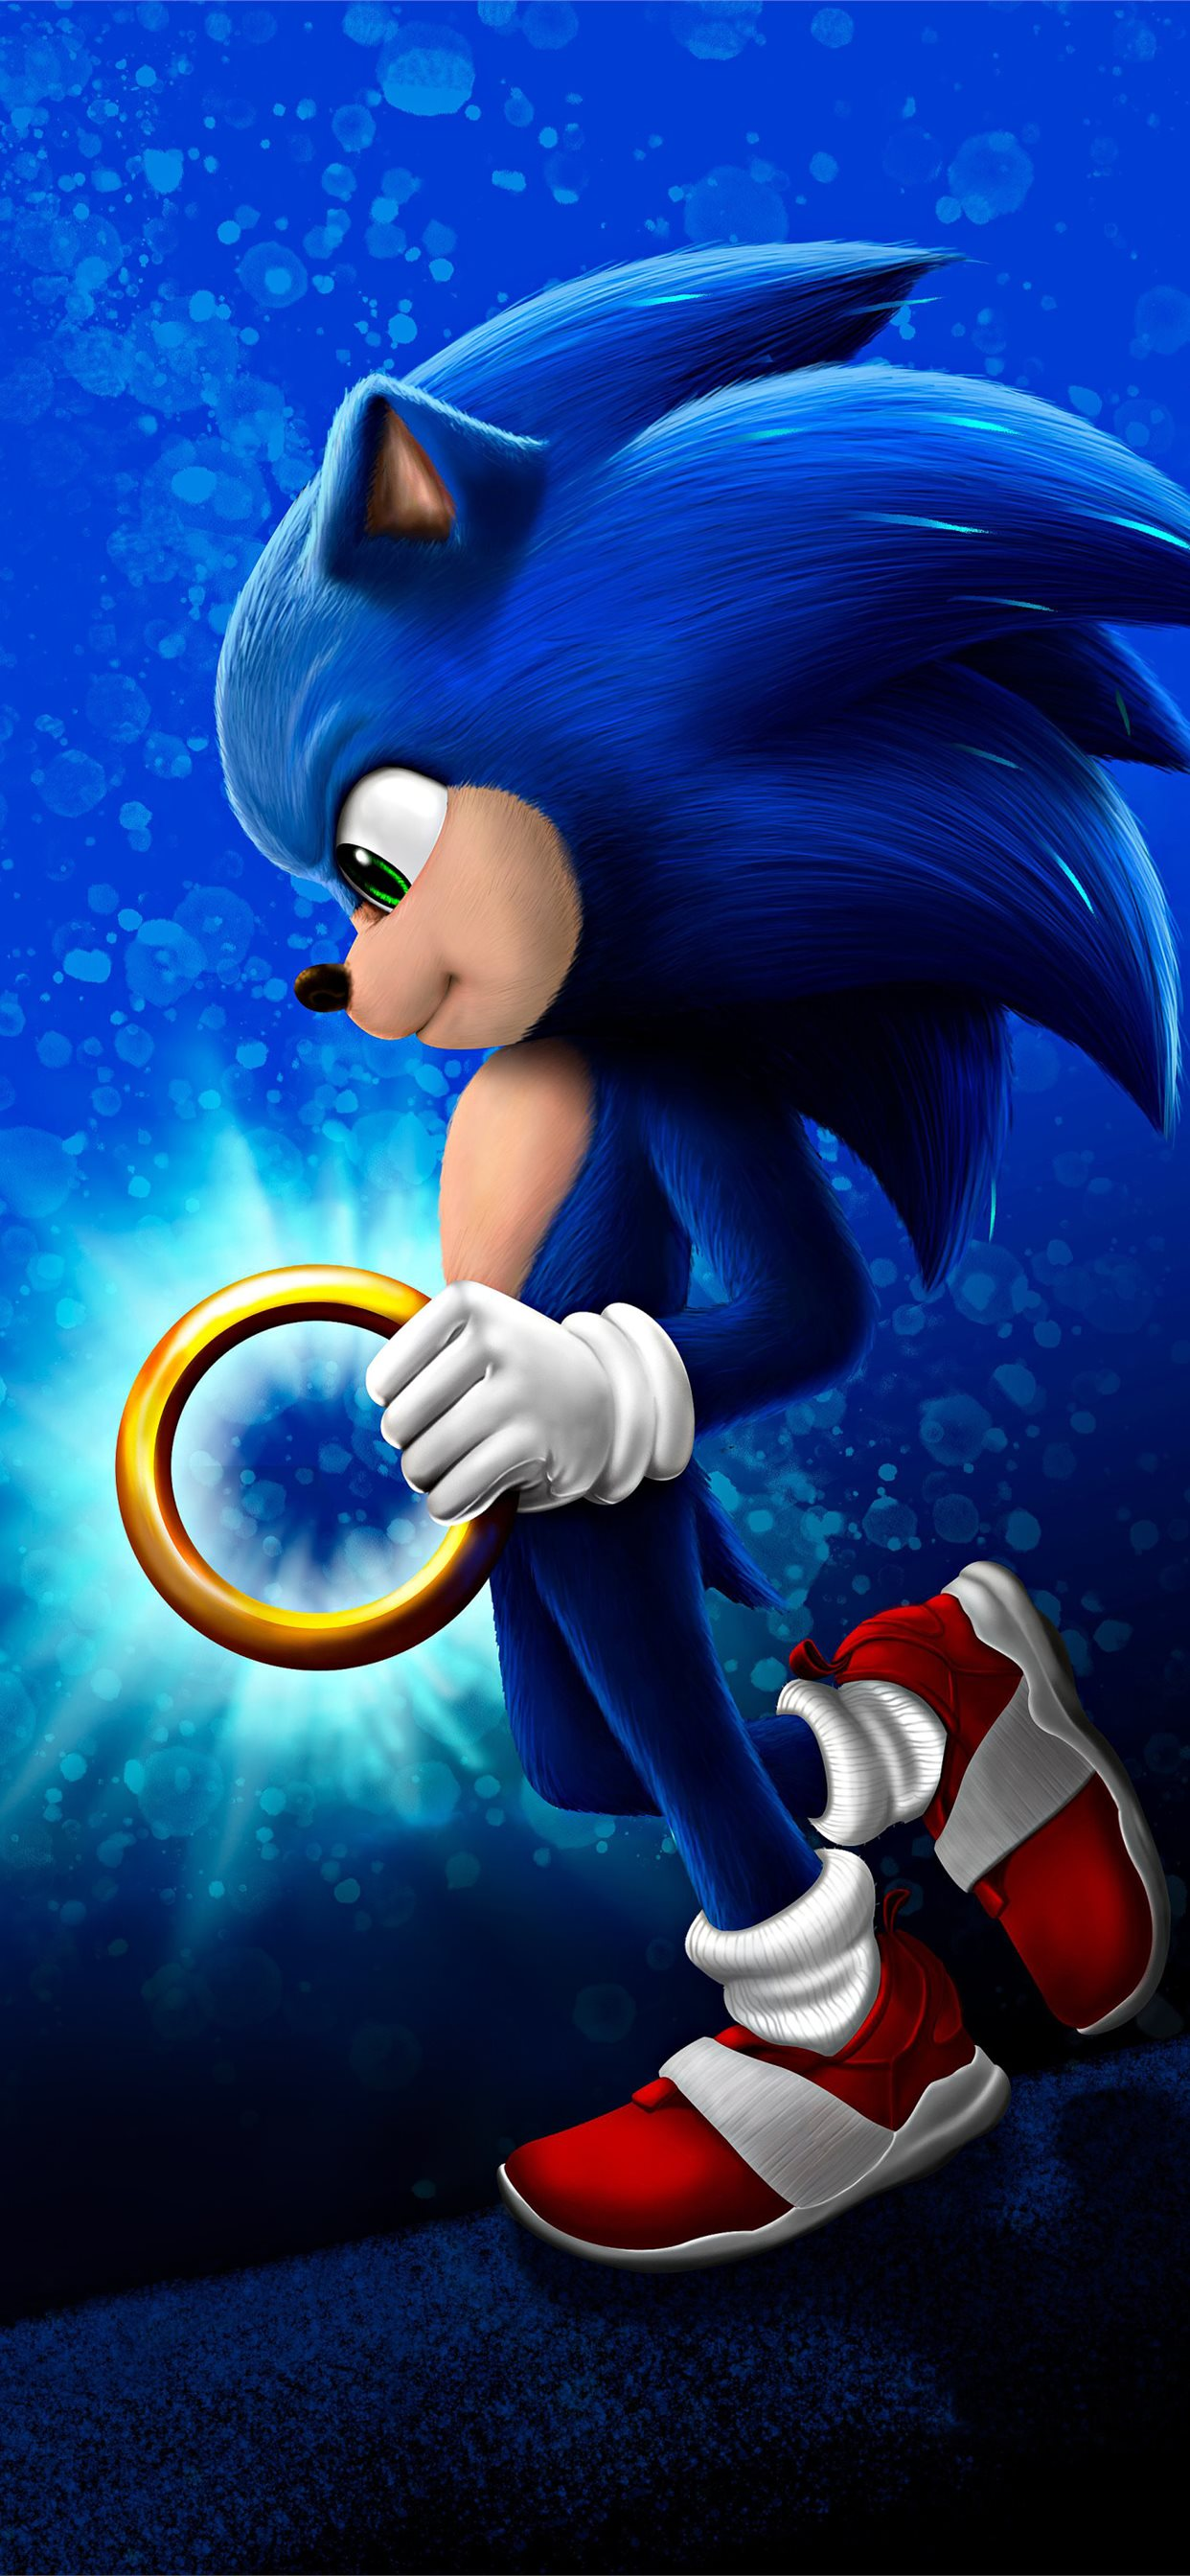 Sonic The Hedgehog4k2020 Iphone X Wallpapers Free Download